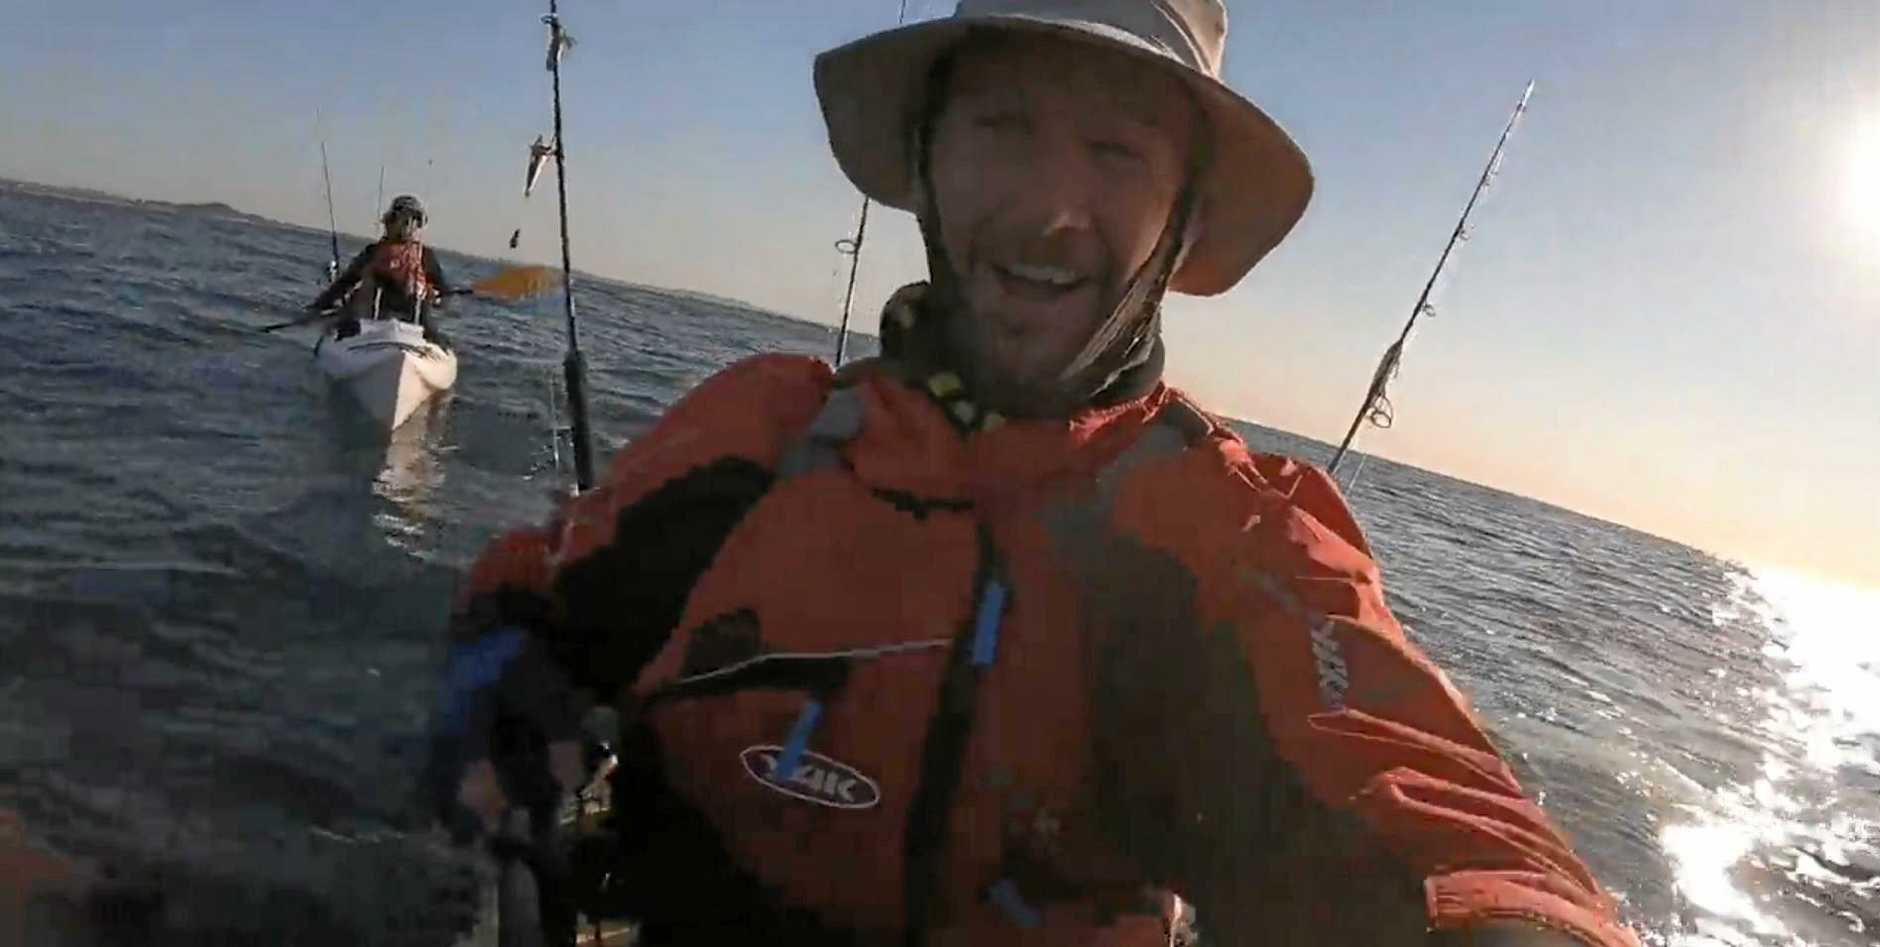 Jason Milne captured his close encounter with a whale while fishing off Coolum on Tuesday.